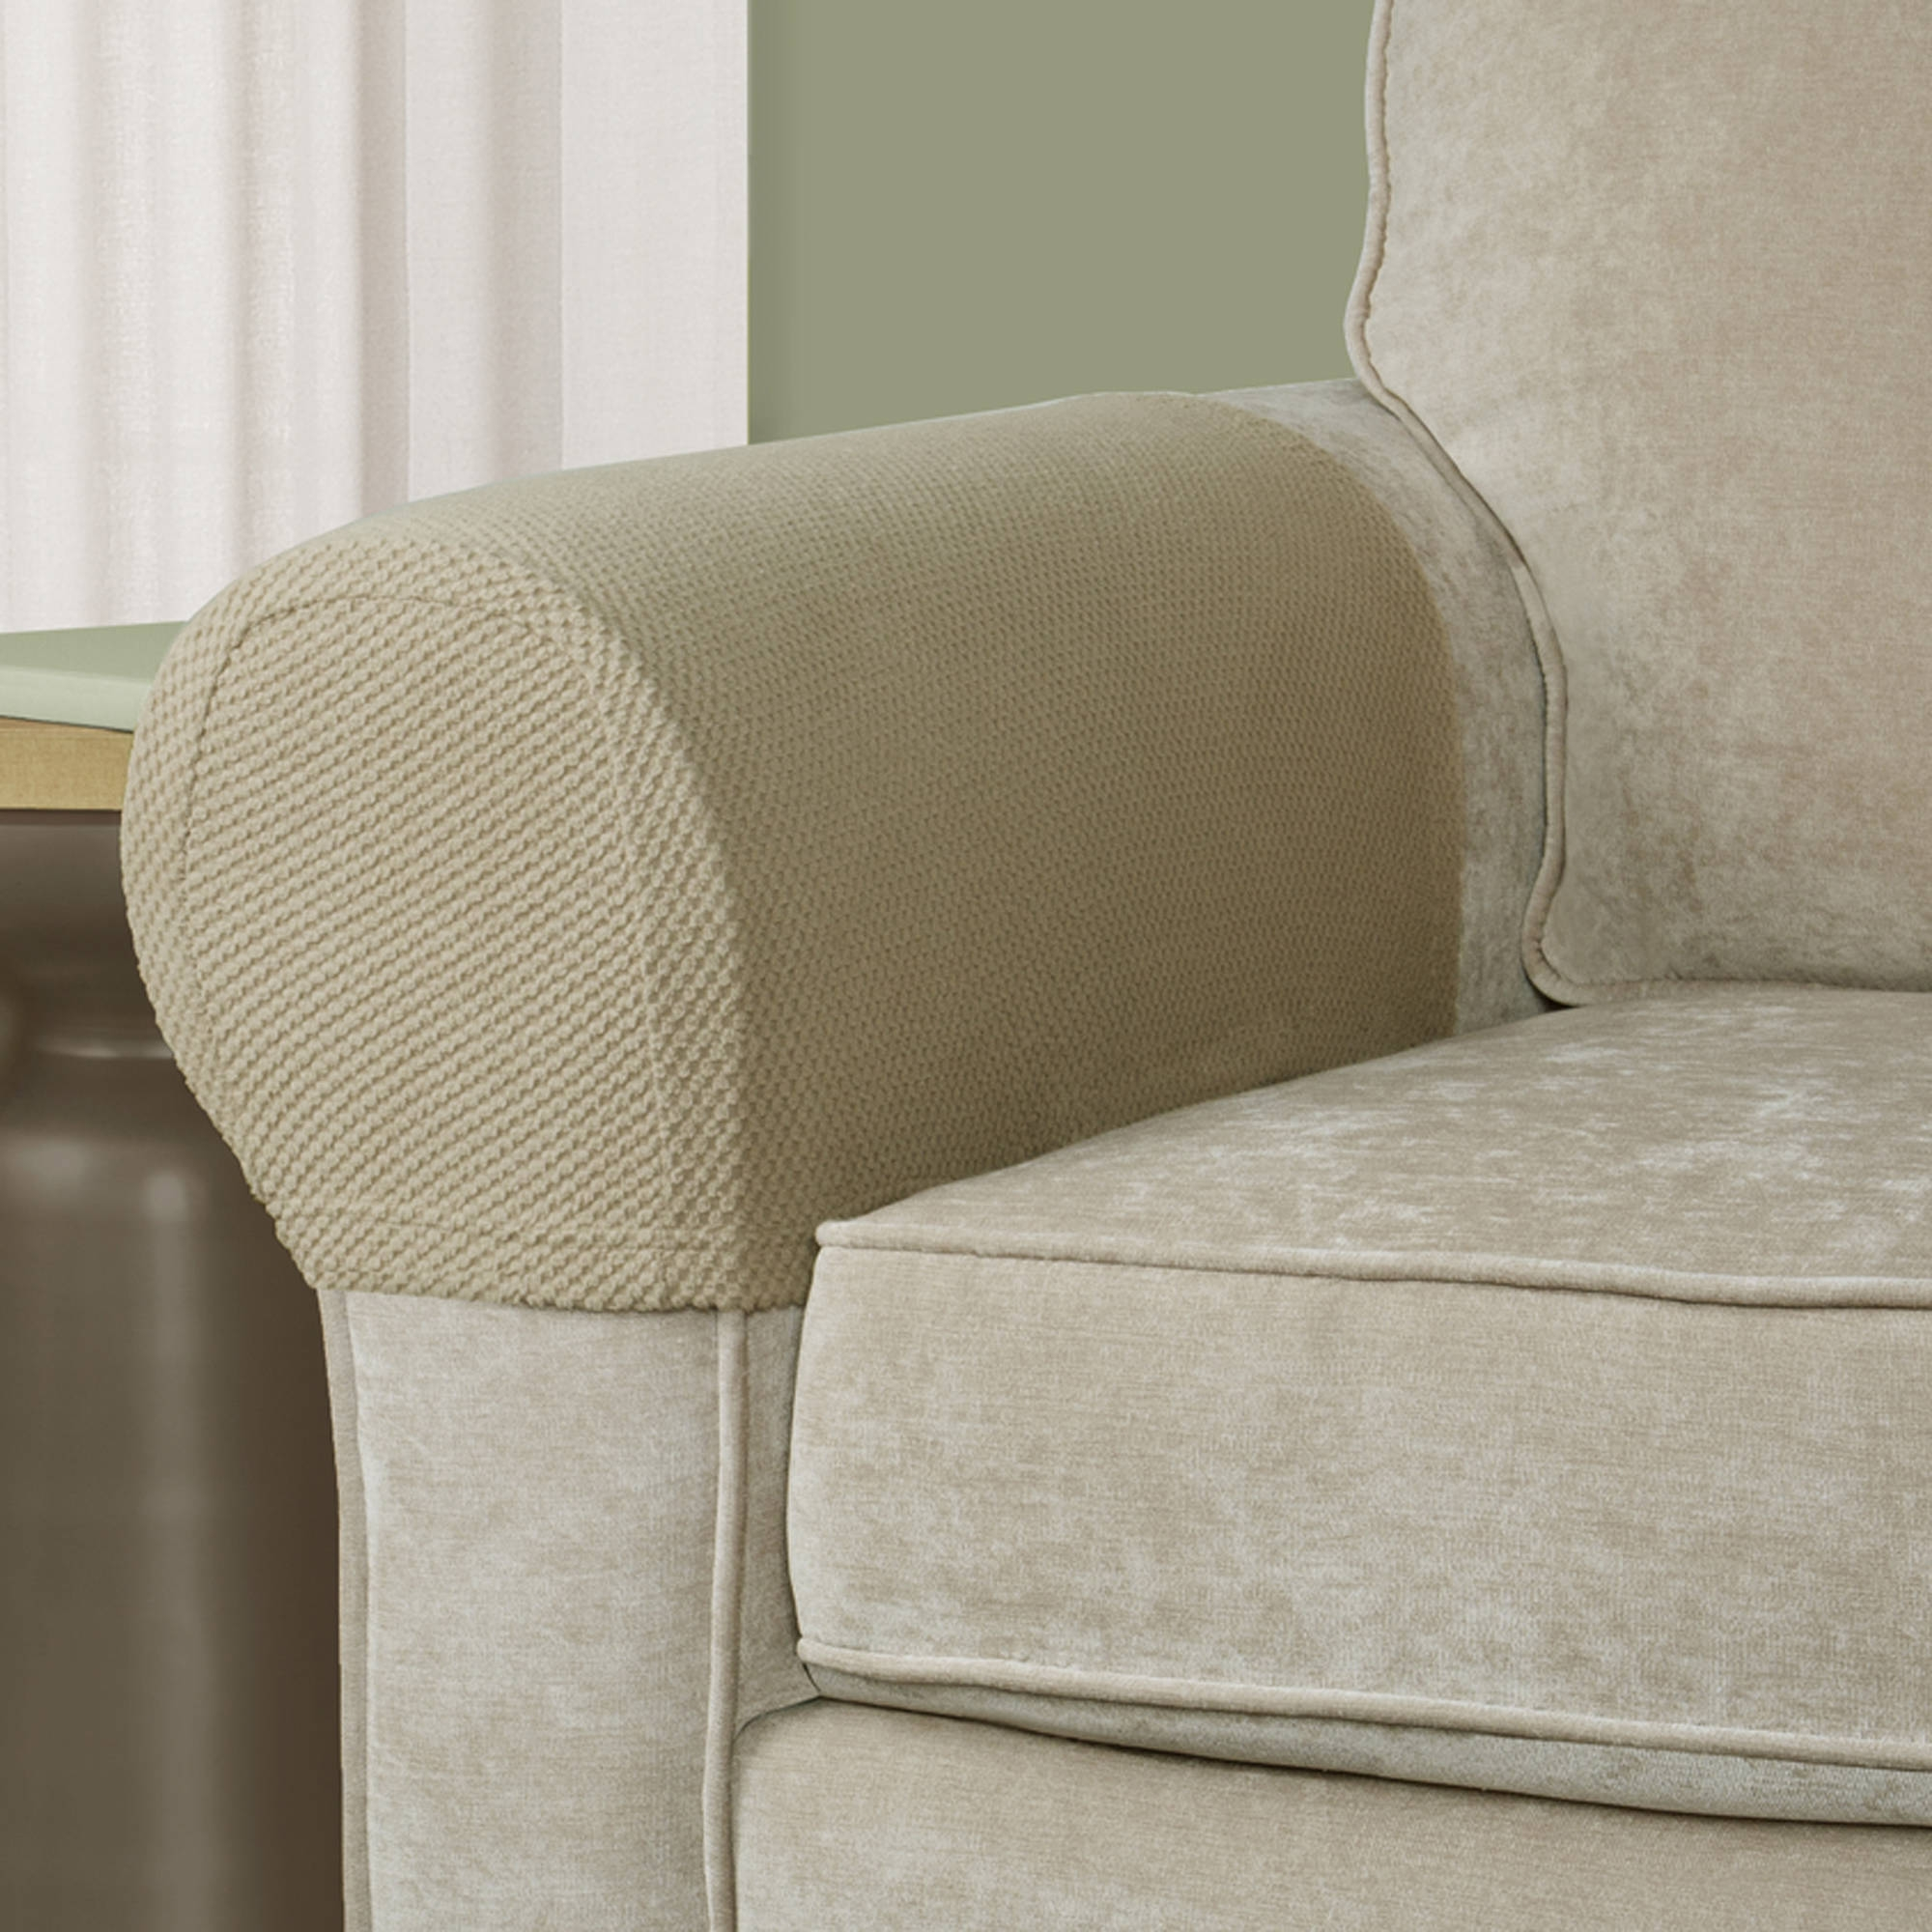 Mainstays Pixel Stretch Fabric Furniture Armrest Covers Walmart Throughout Arm Caps For Chairs (Image 14 of 15)